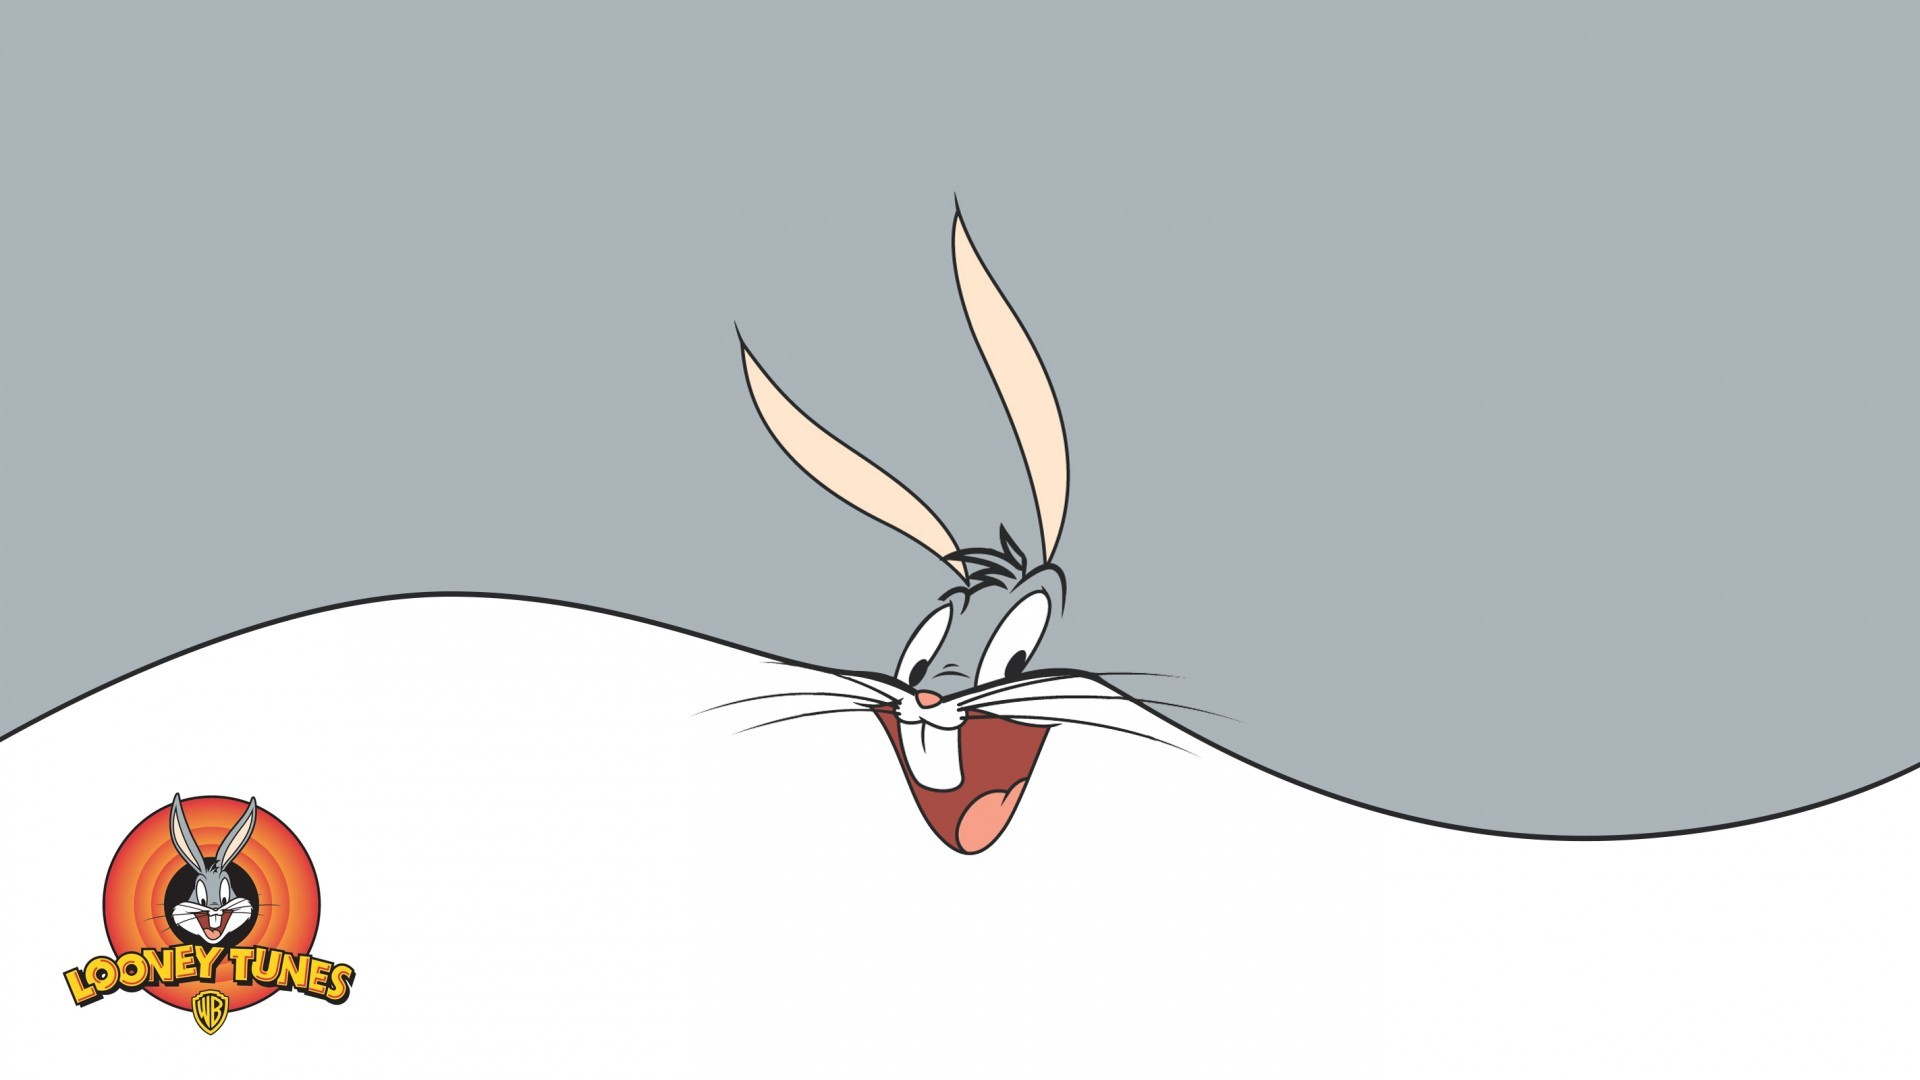 1920x1080 Bugs Bunny HD Wallpapers Free Background 1920×1080 Bugs Bunny Wallpapers  (45 Wallpapers)